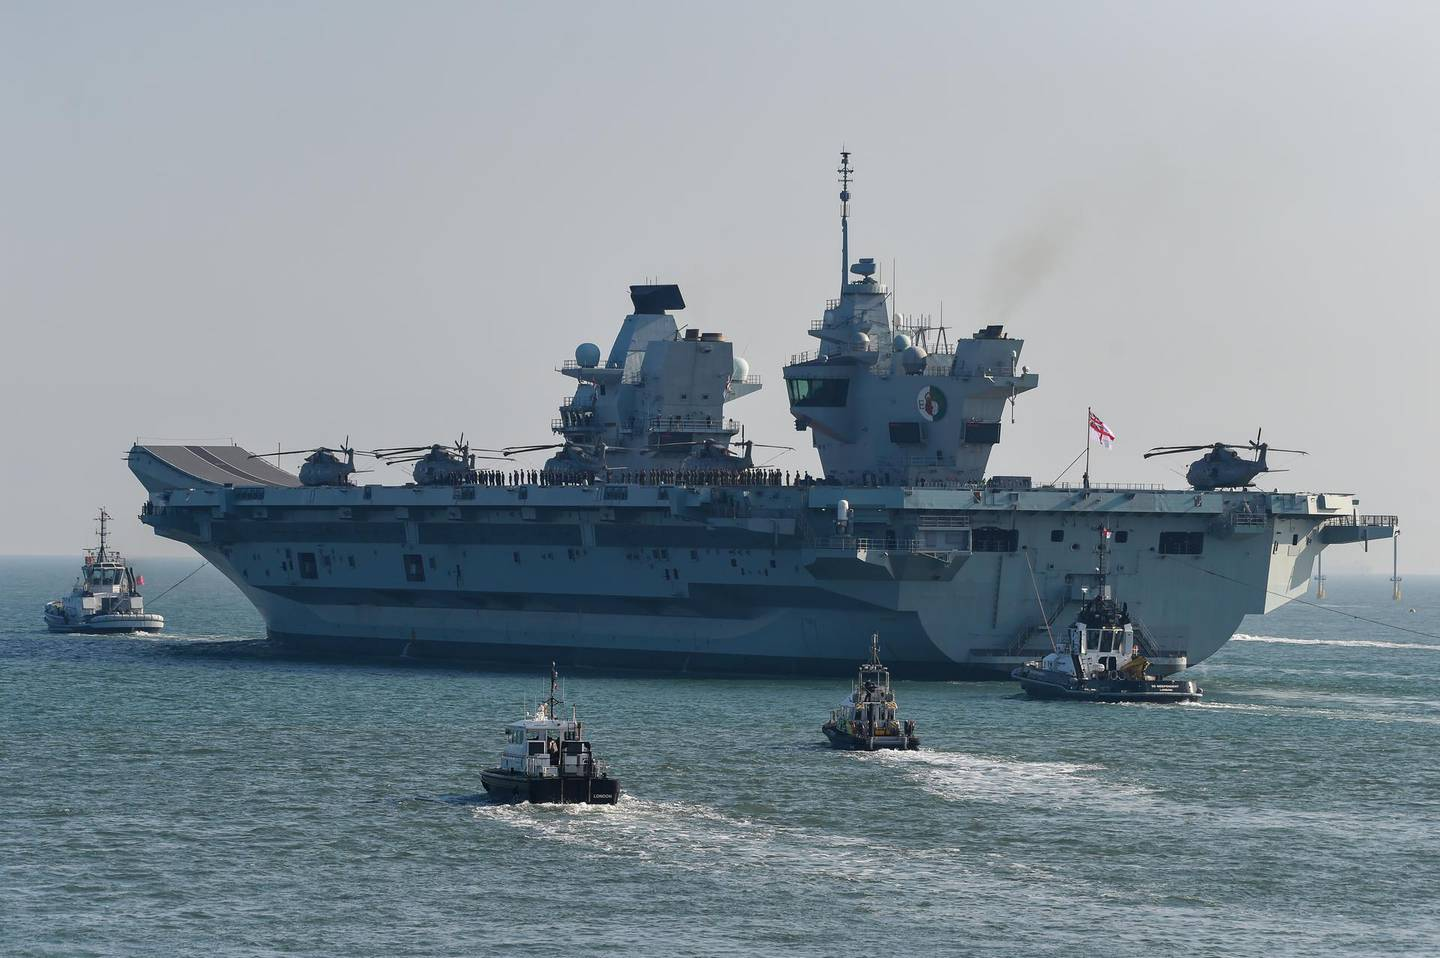 PORTSMOUTH, ENGLAND - SEPTEMBER 21: HMS Queen Elizabeth departs from the Naval base on September 21, 2020 in Portsmouth, England. The £3 billion aircraft carrier was due to sail last week but was delayed due to high easterly winds. The 65,000-tonne aircraft carrier's entire crew has been retested for Covid-19 with approximately 100 sailors having to self-isolate after 'fewer than 10' tested positive. (Photo by Finnbarr Webster/Getty Images)